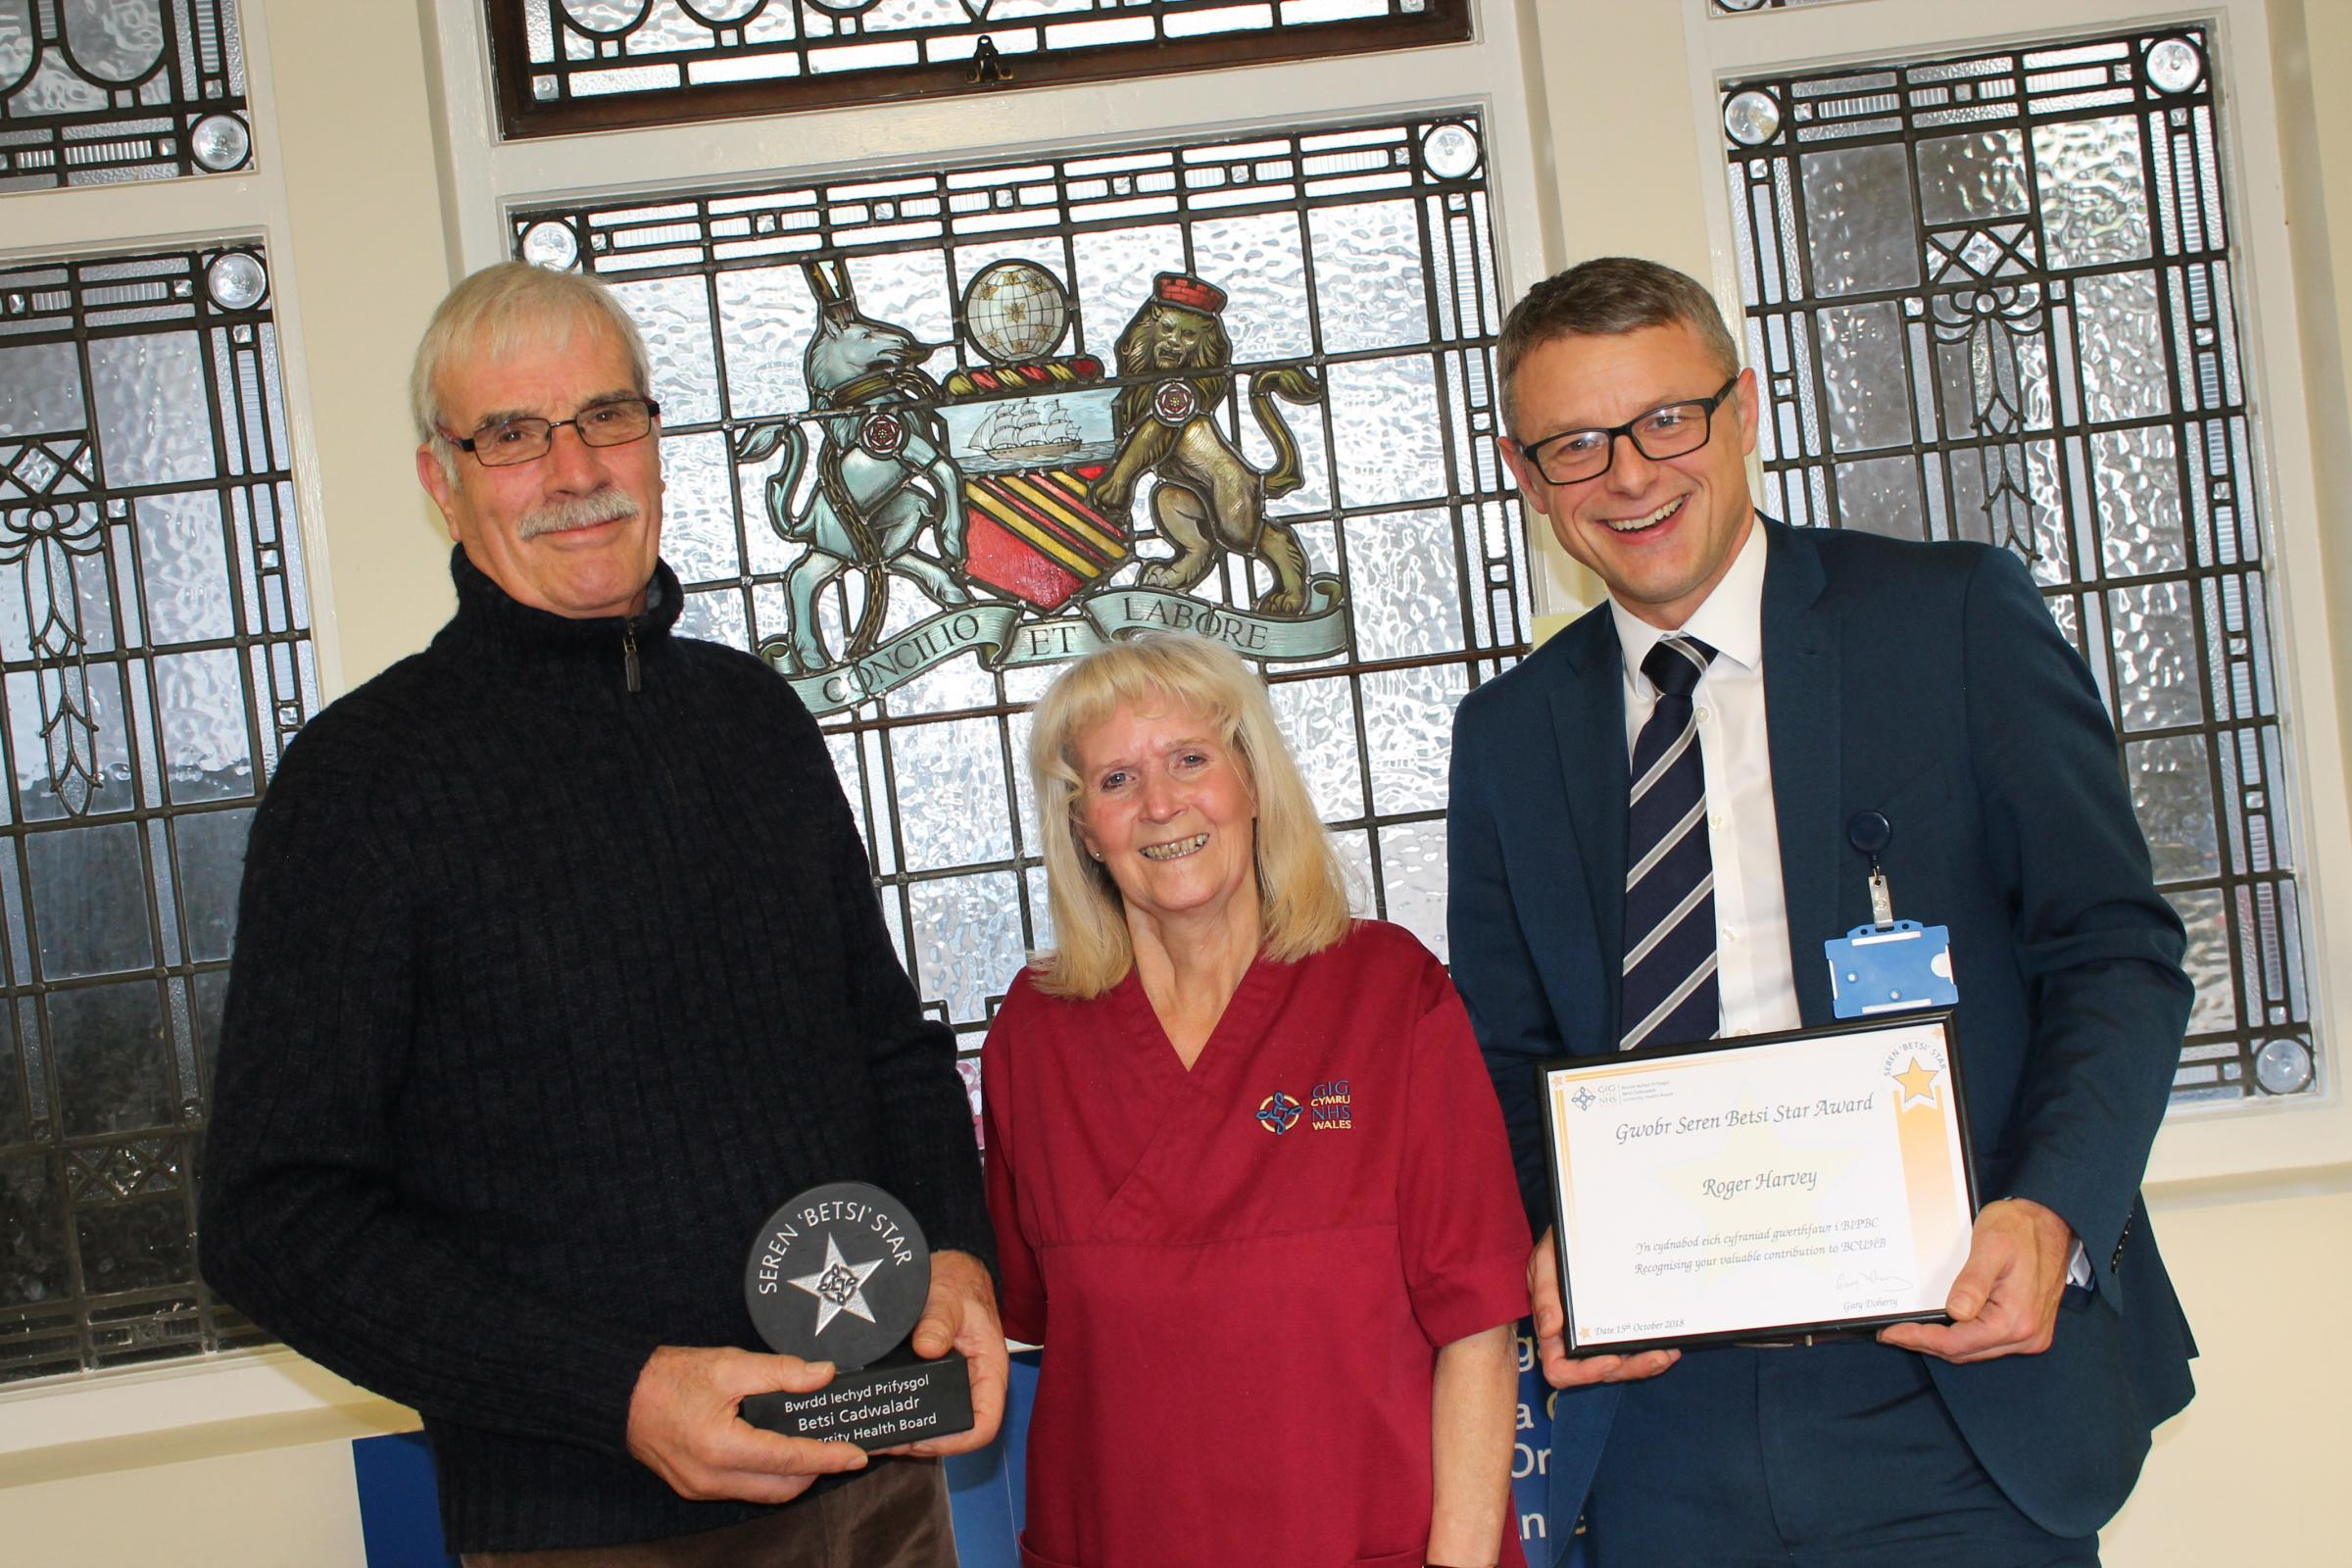 Roger Harvey receives his award from Gary Doherty, Chief Executive of Betsi Cadwaladr University Health Board. Also pictured is Domestic Assistant Angela Fortune